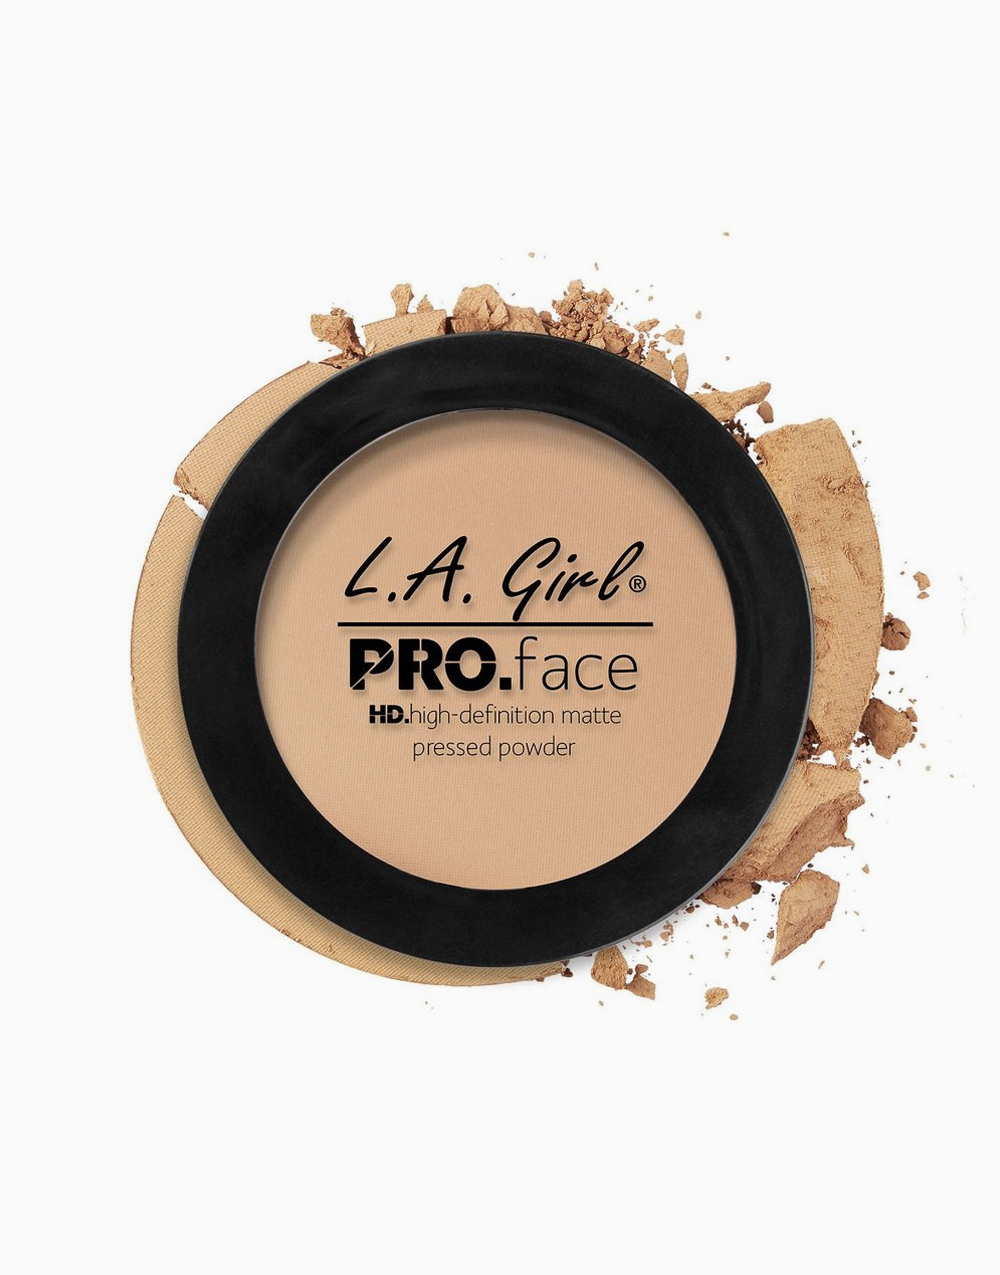 PRO Face Pressed Powder by L.A. Girl | Nude Beige